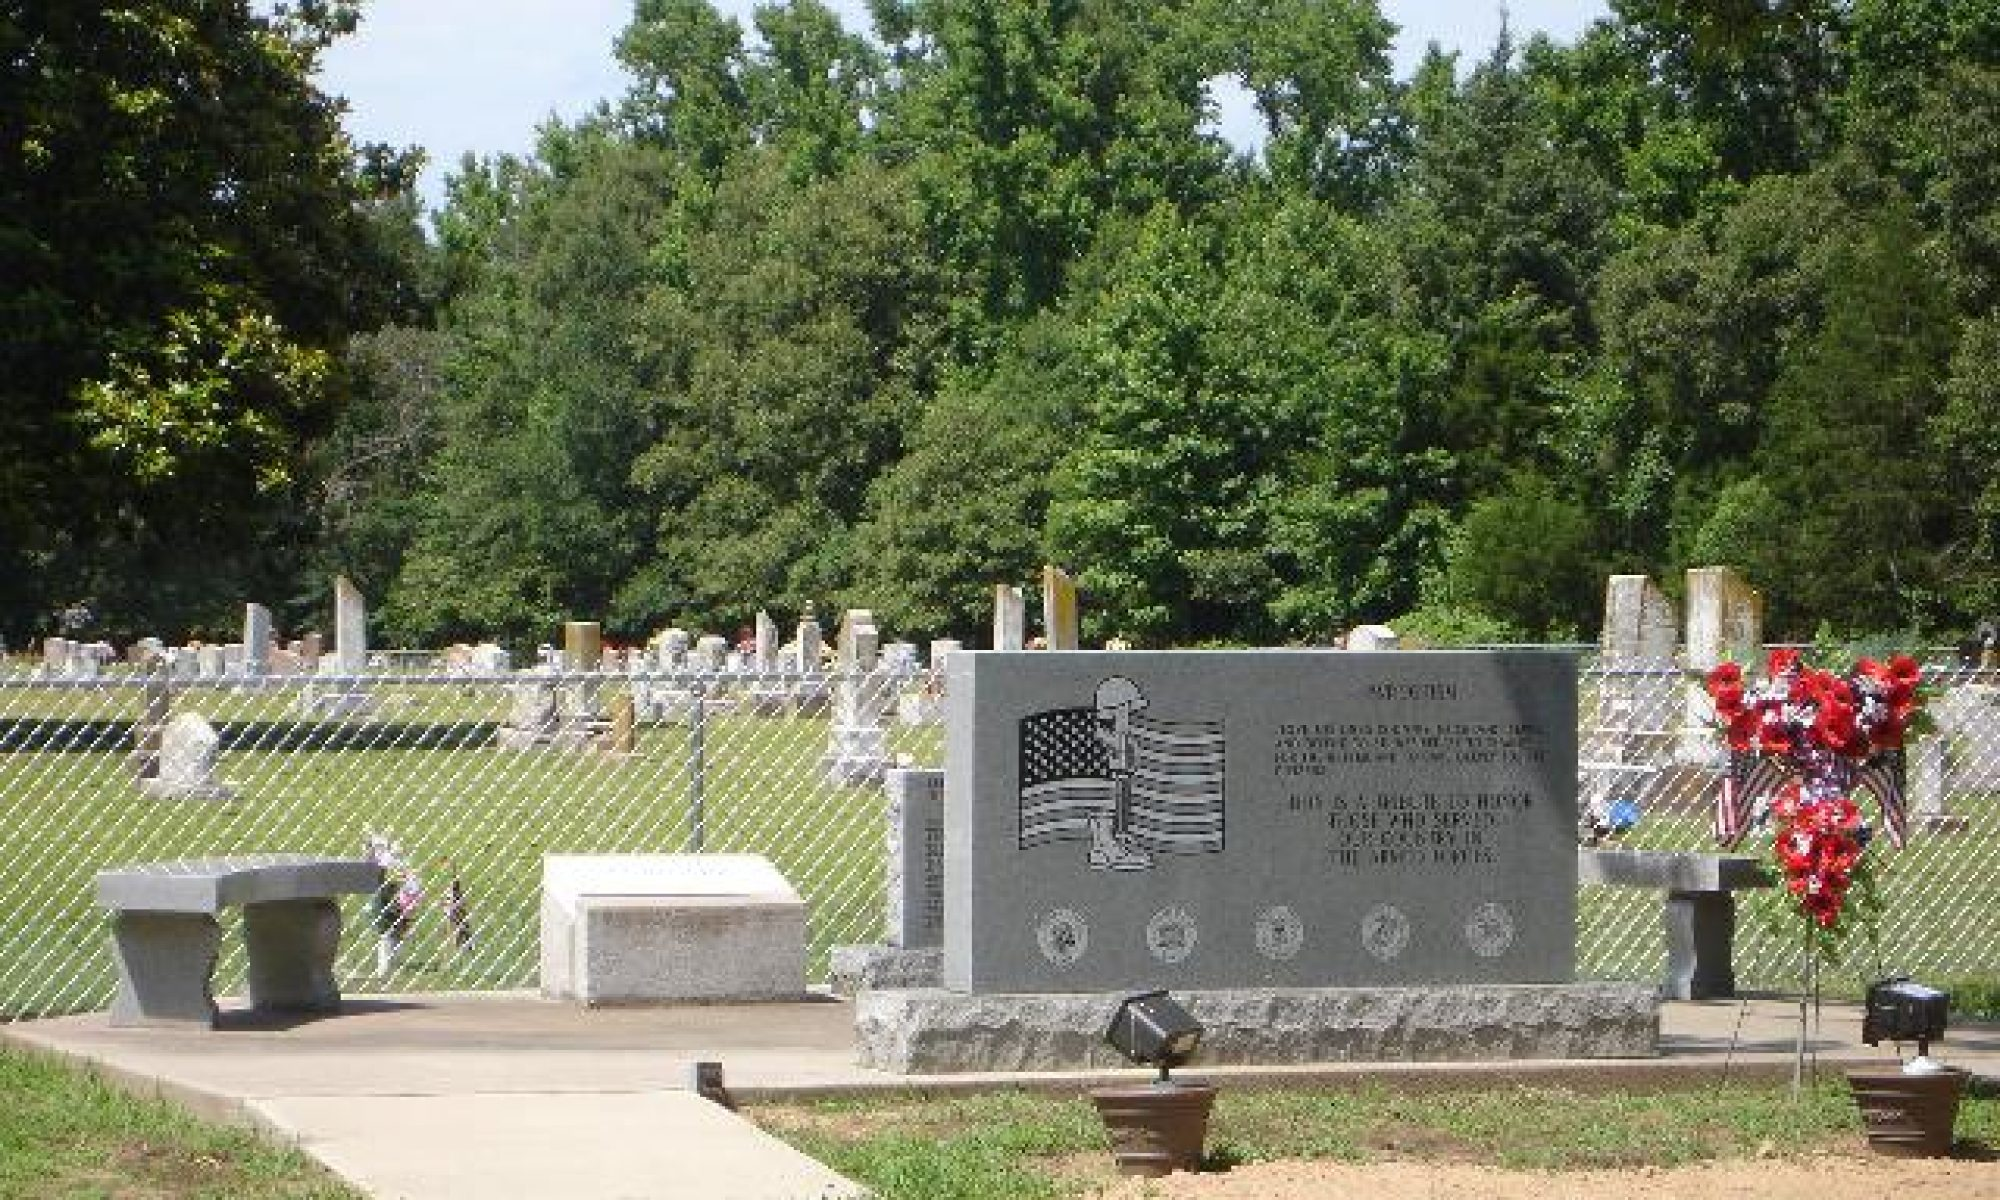 Bethel Cemetery Association of Franklin County